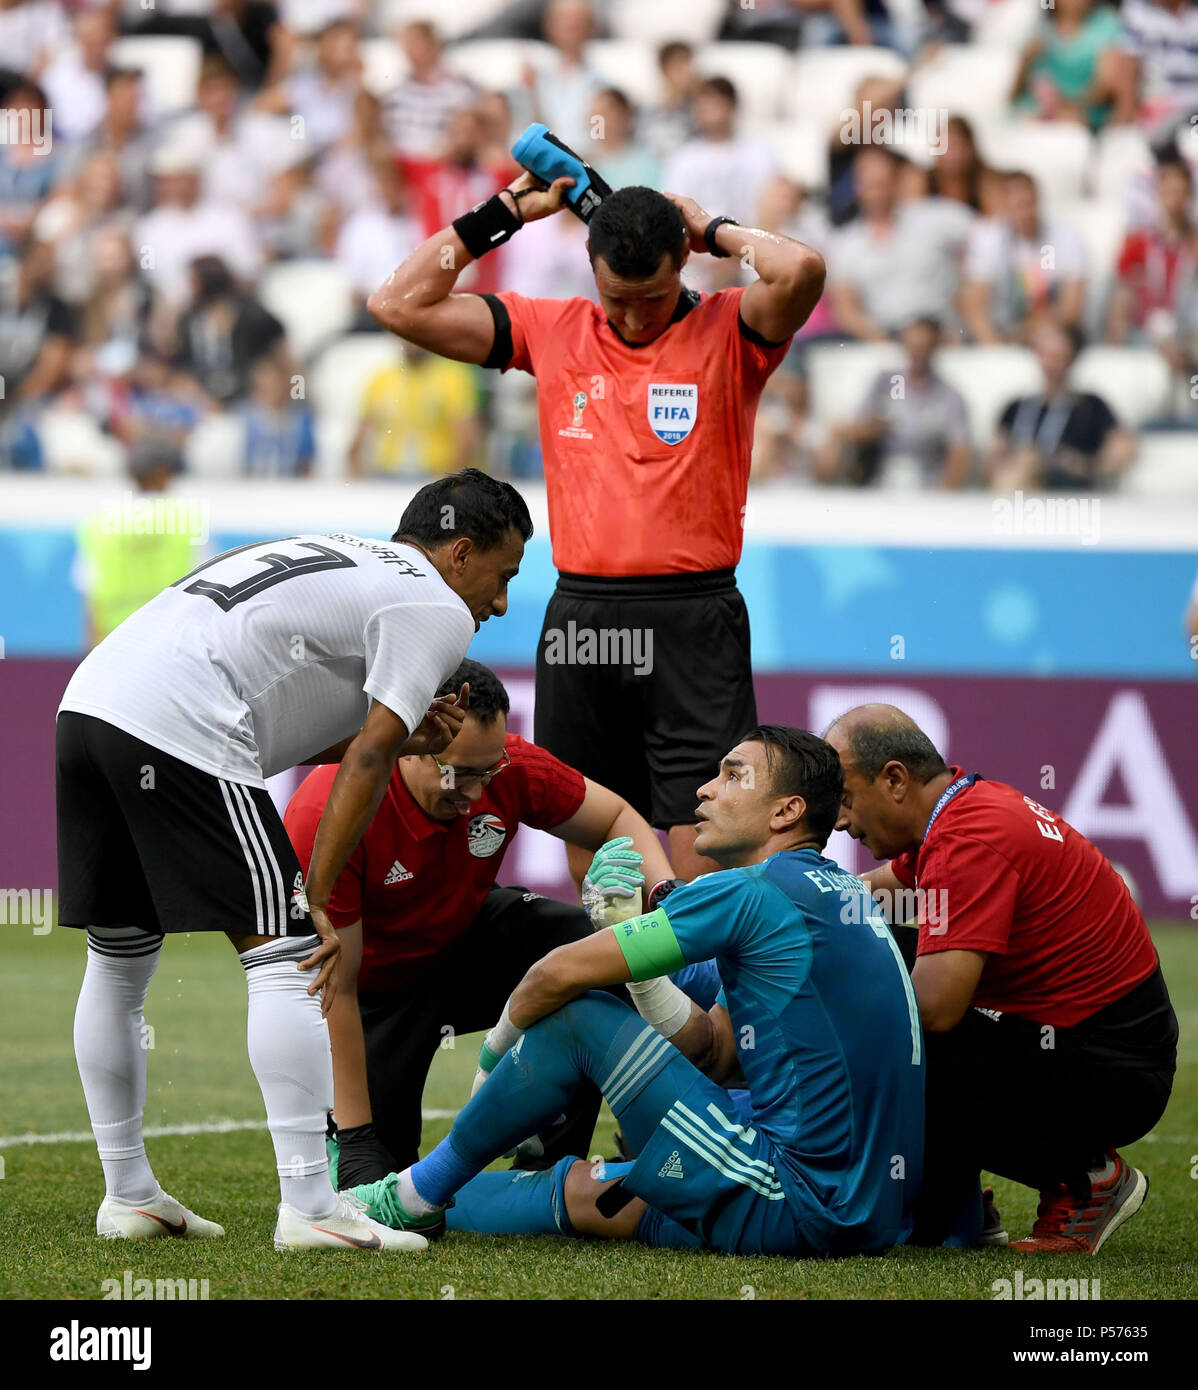 Egypt s goalkeeper Essam El Hadary (2nd R) receives medical treatment after  his injury during the 2018 FIFA World Cup Group A match between Saudi  Arabia and ... 3c924c9f9b52f